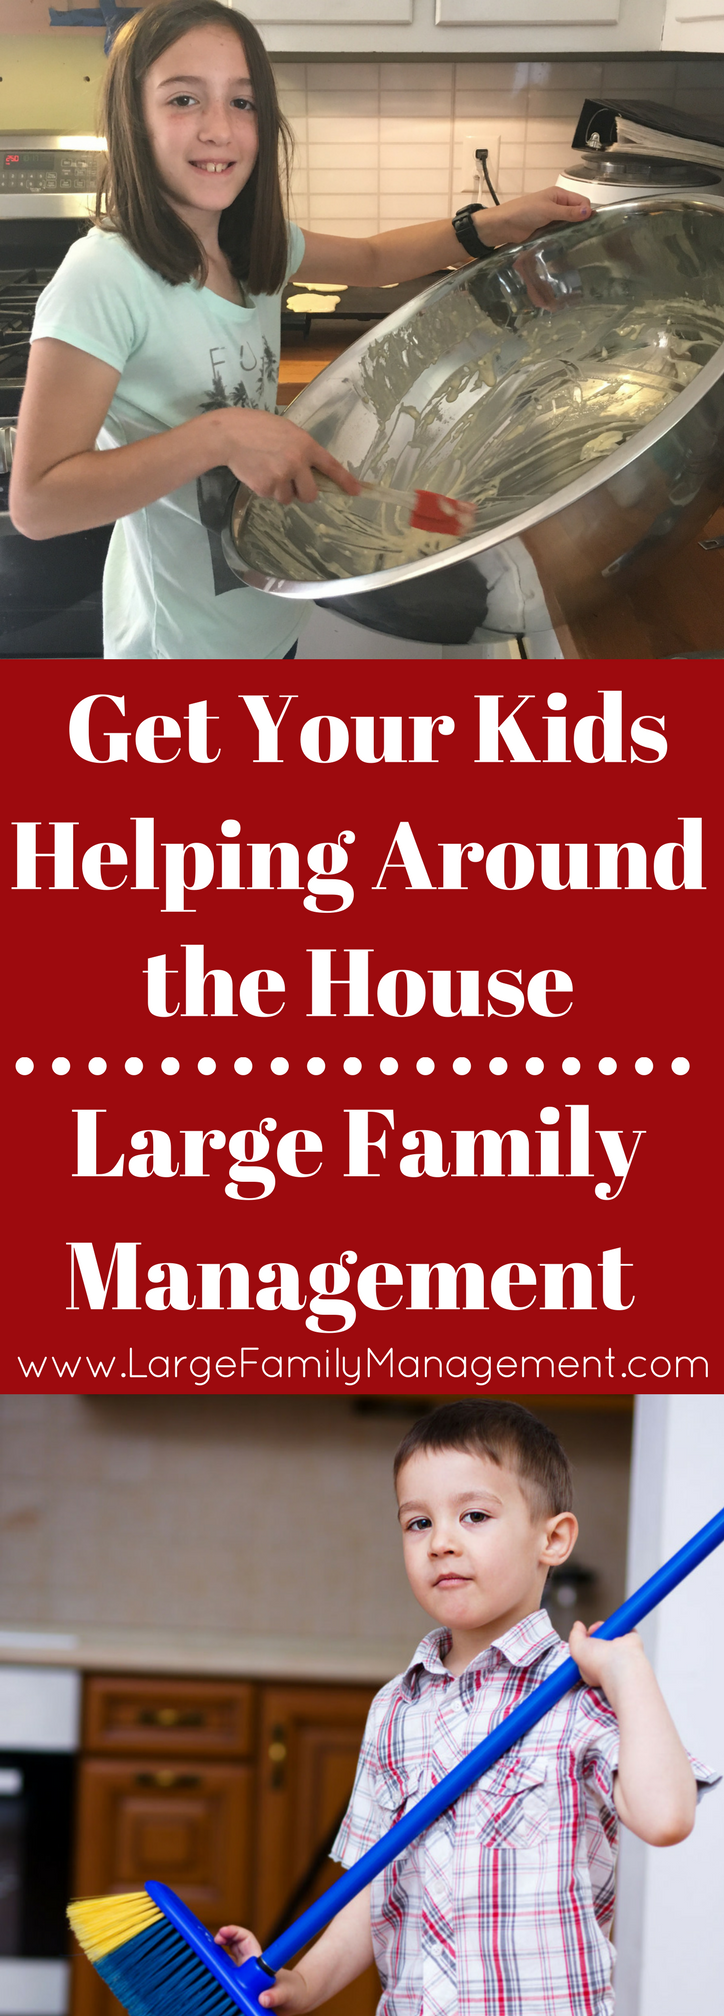 Large Family Chores and Helping Around the House